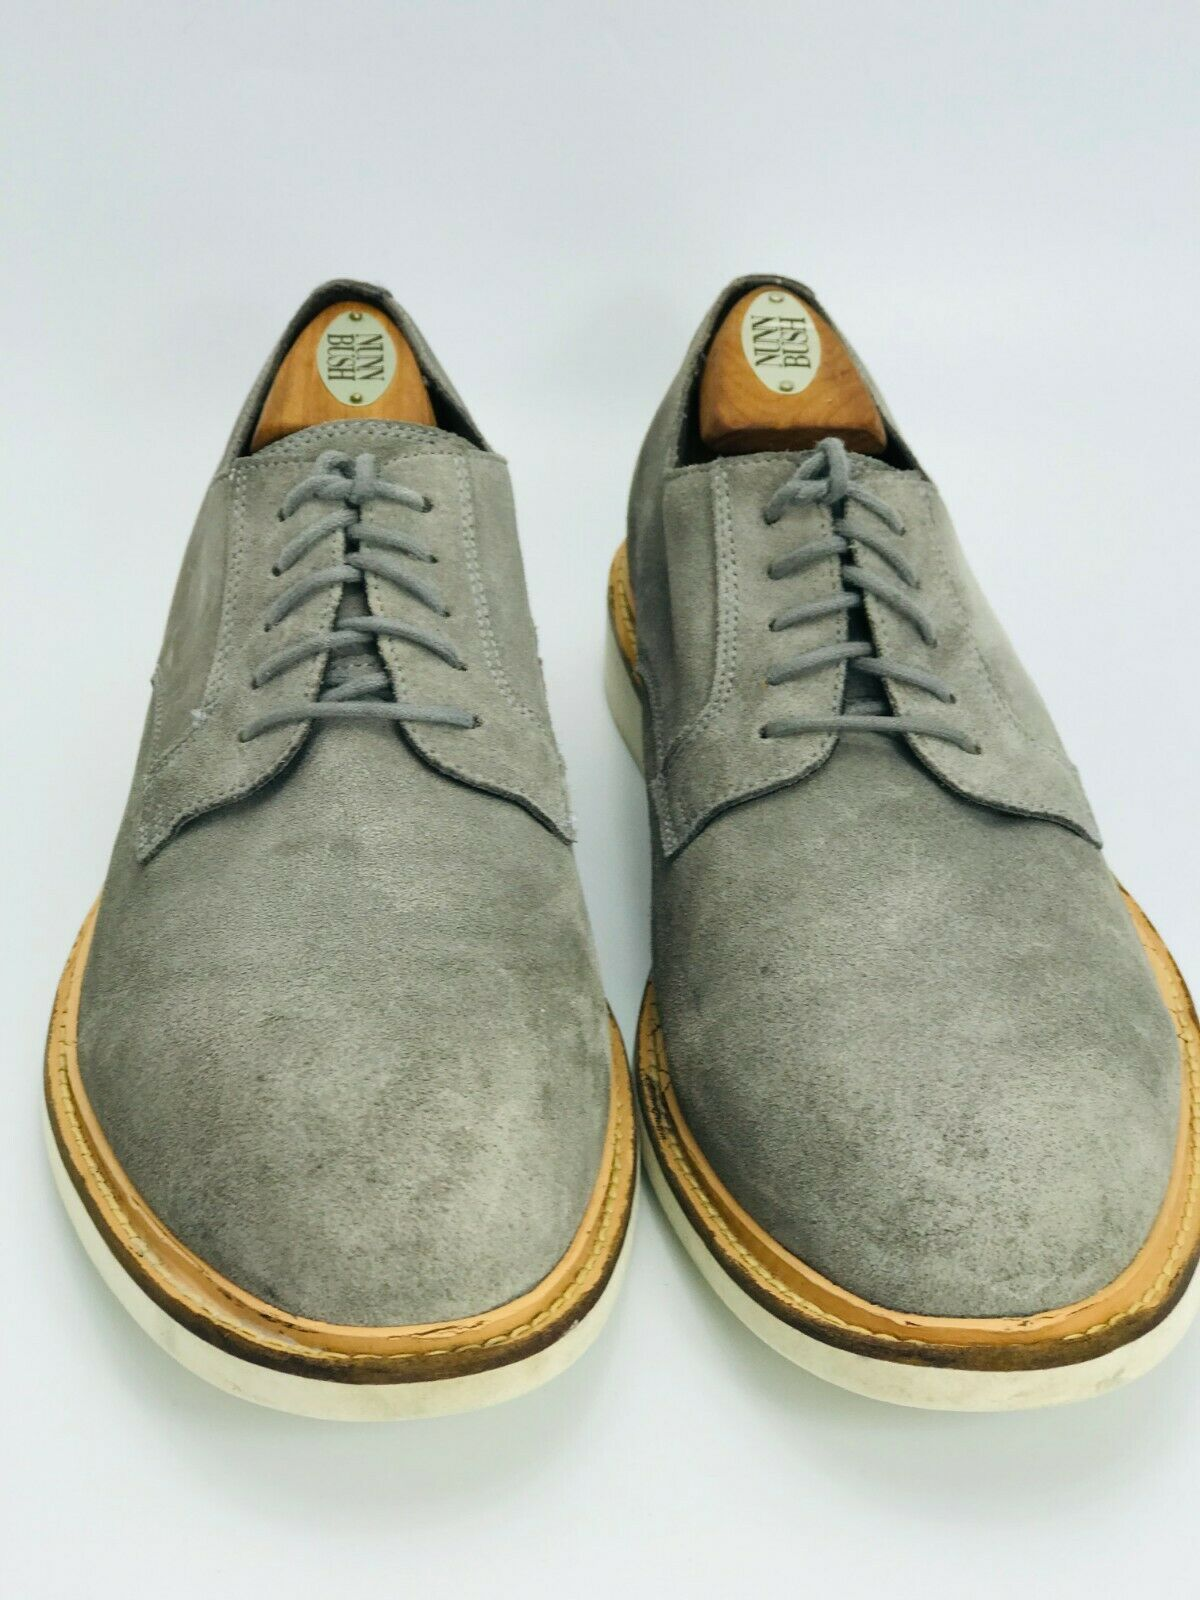 Cole Haan Men's Great Jones Plain Oxford Gray Suede Size 10.5D